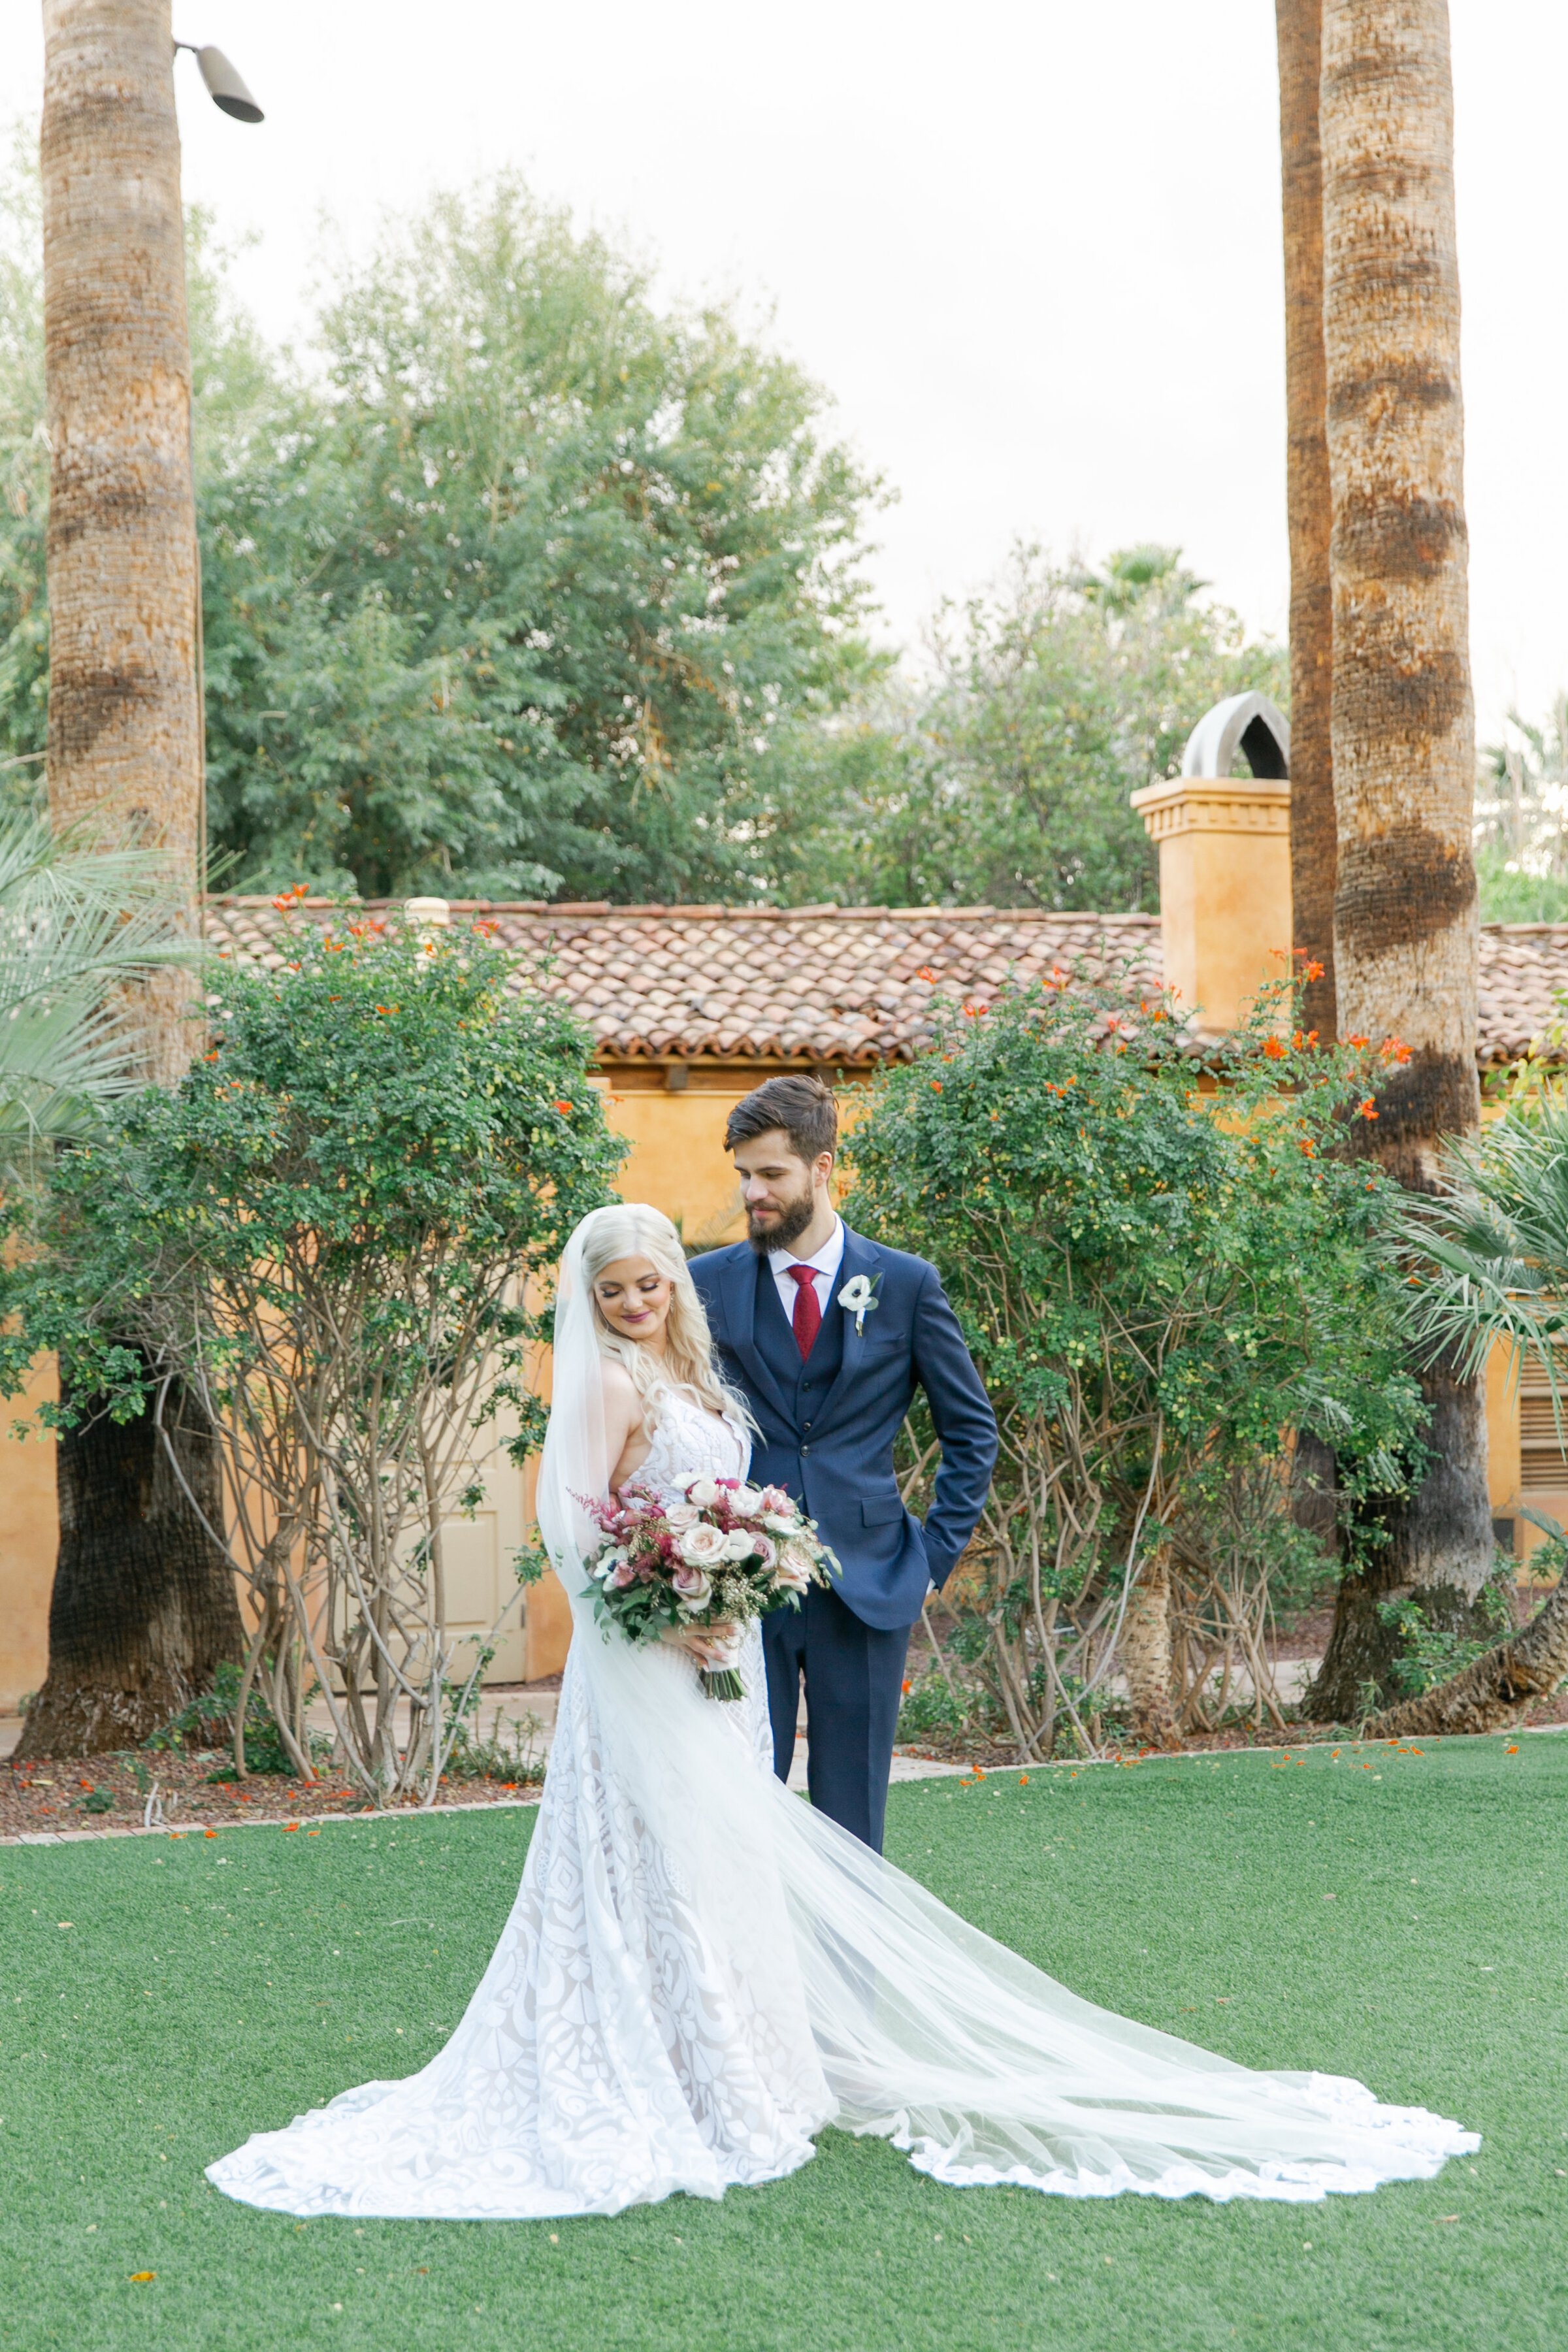 Karlie Colleen Photography - The Royal Palms Wedding - Some Like It Classic - Alex & Sam-484